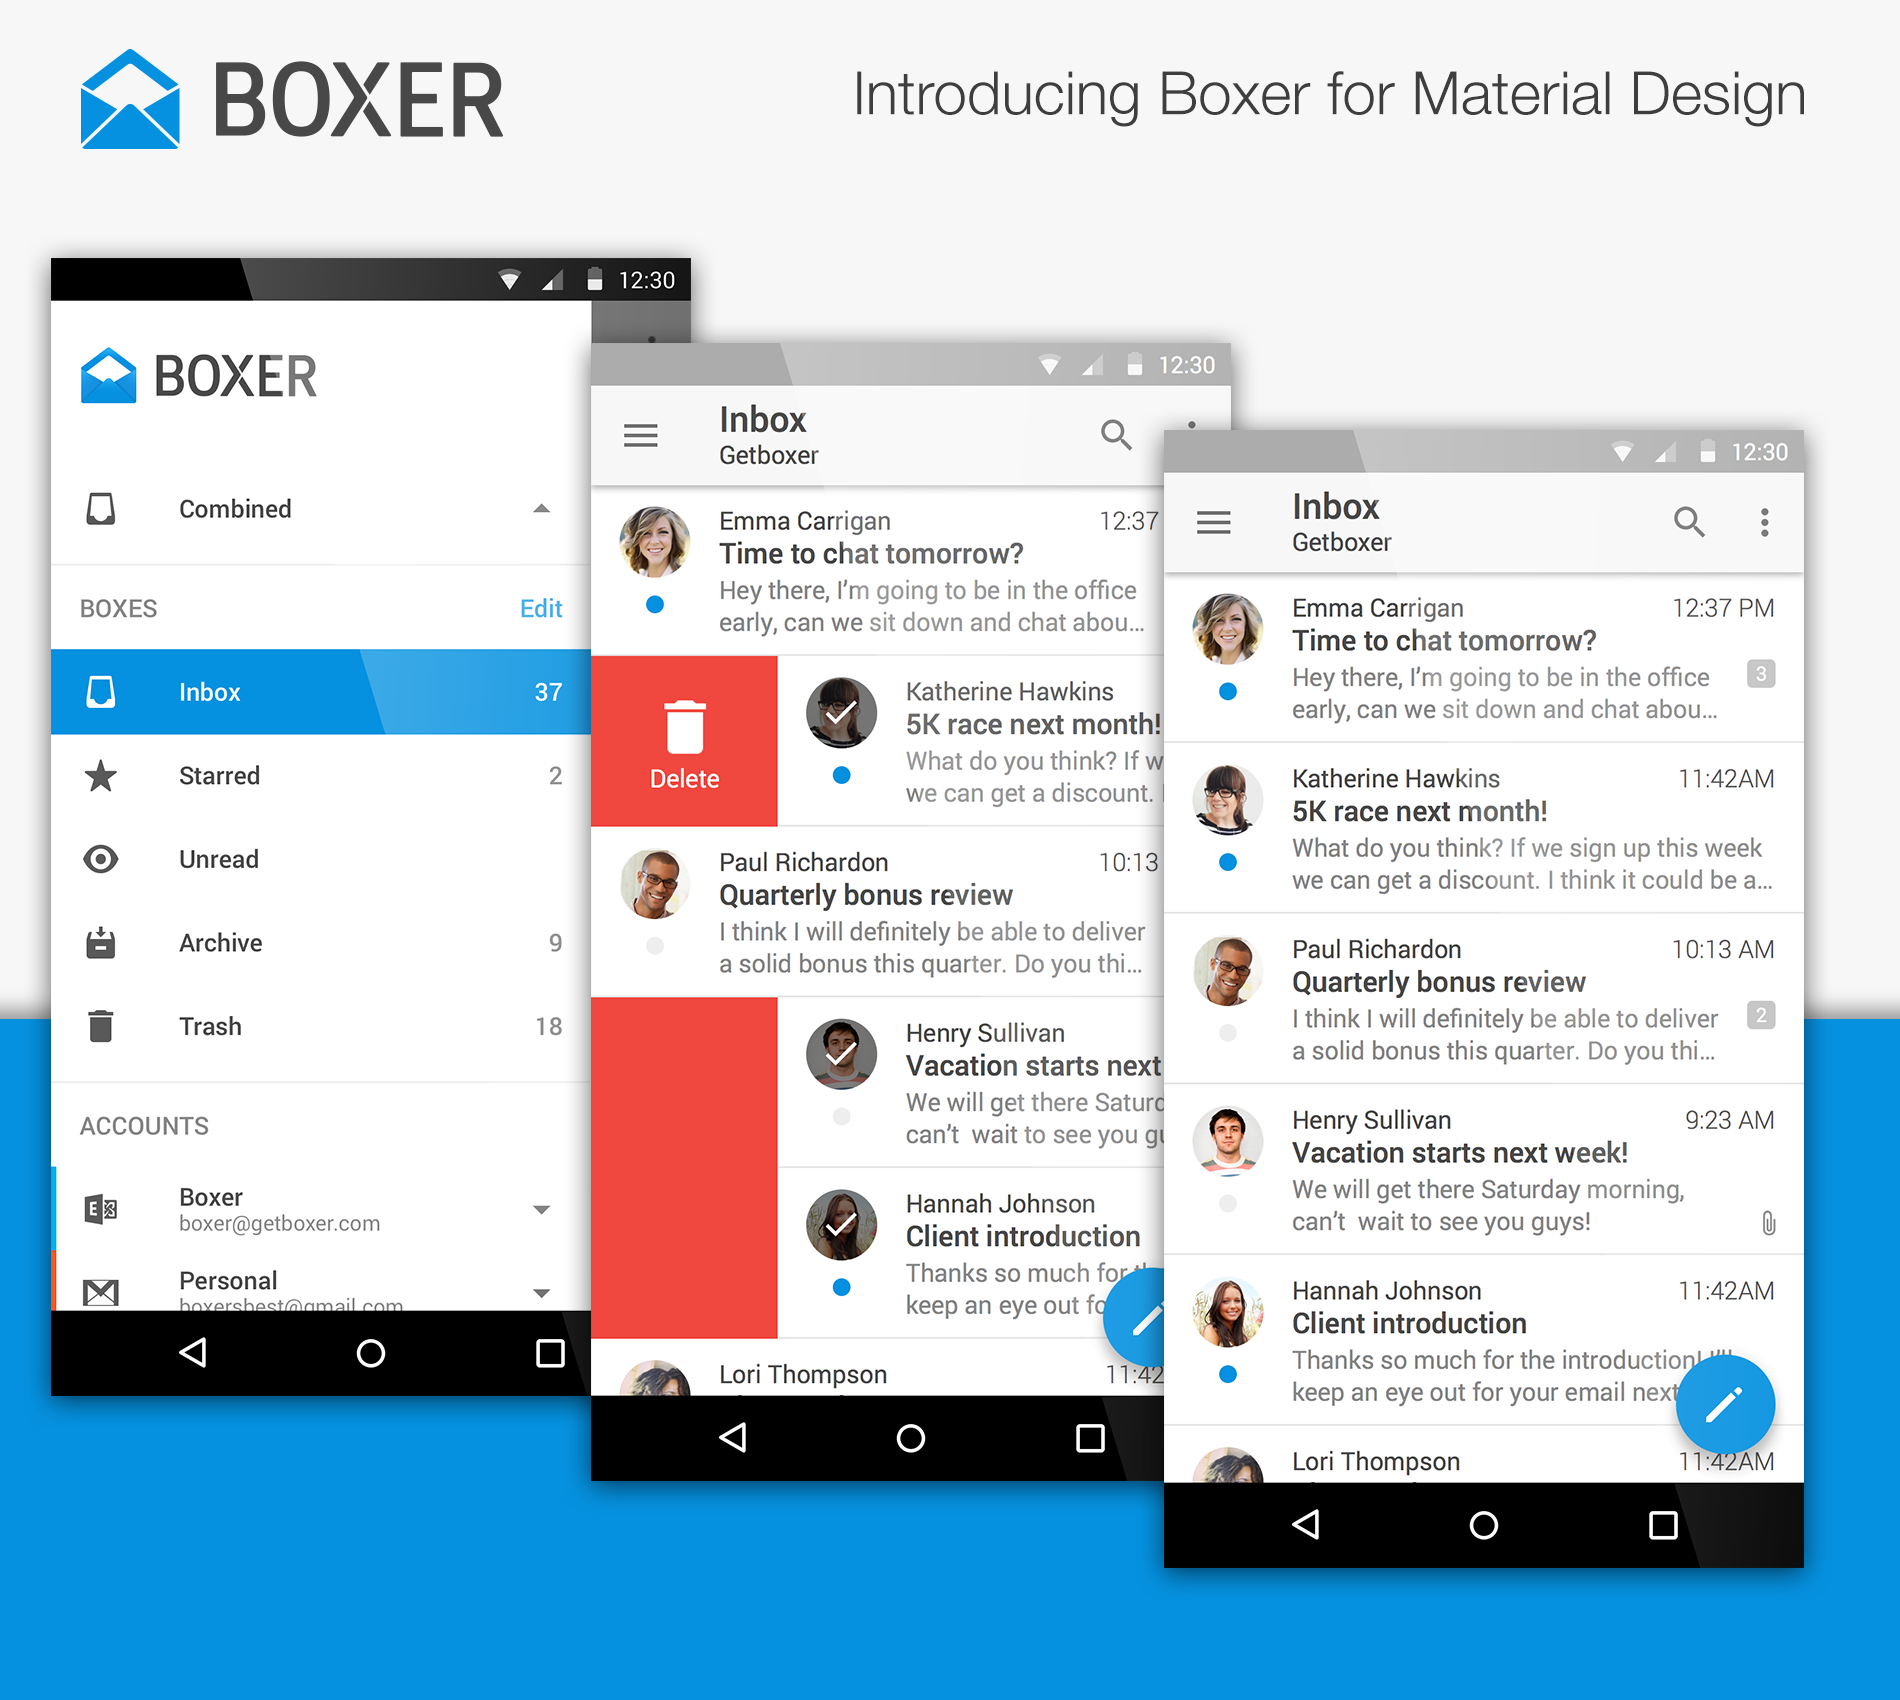 Cyanogen's email client Boxer gains material design in new update